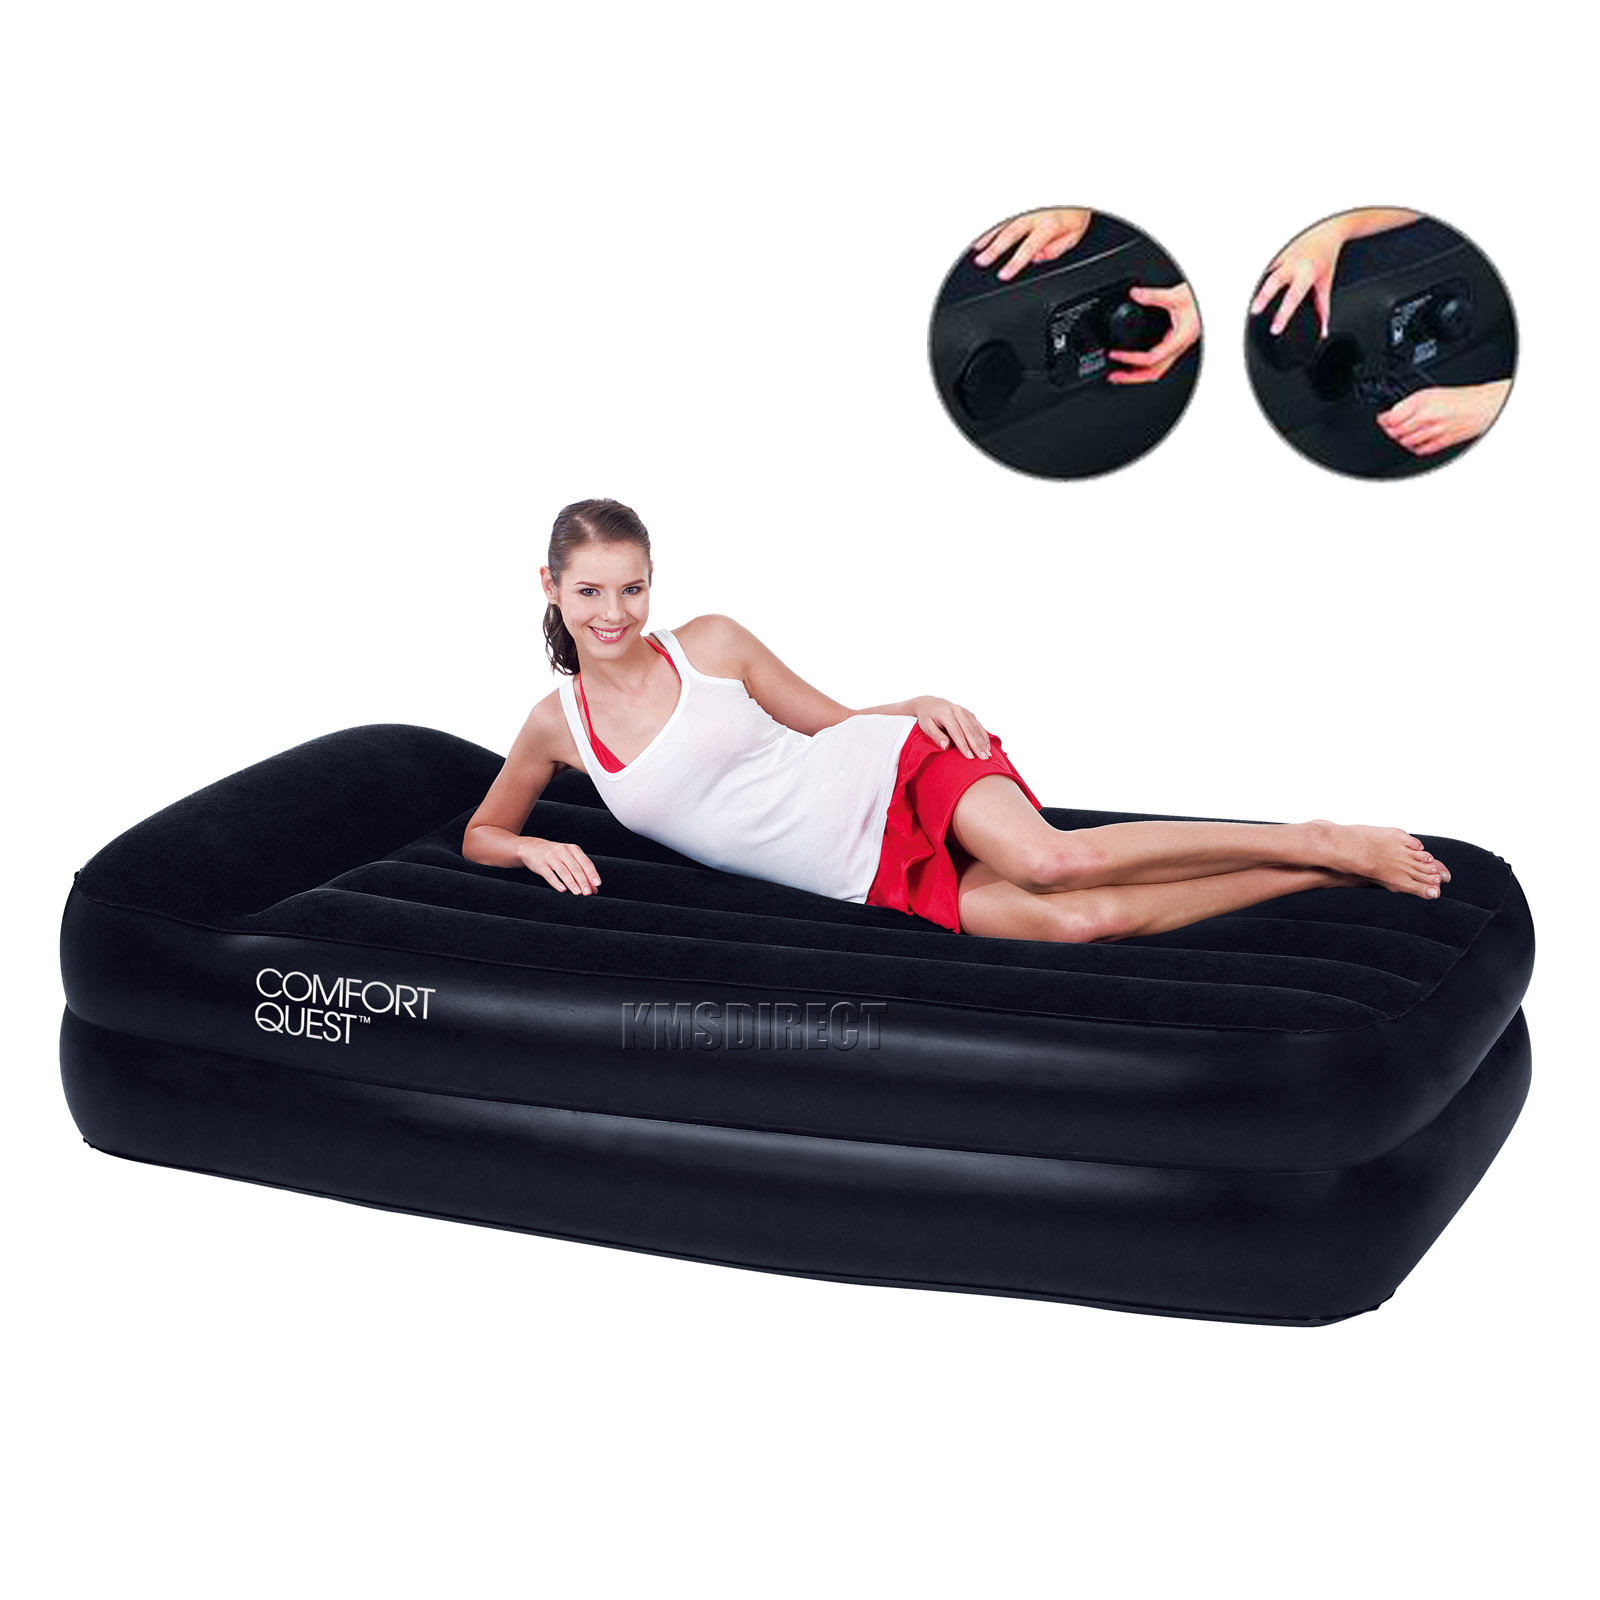 New Bestway Single Flocked Inflatable Comfort Quest Air